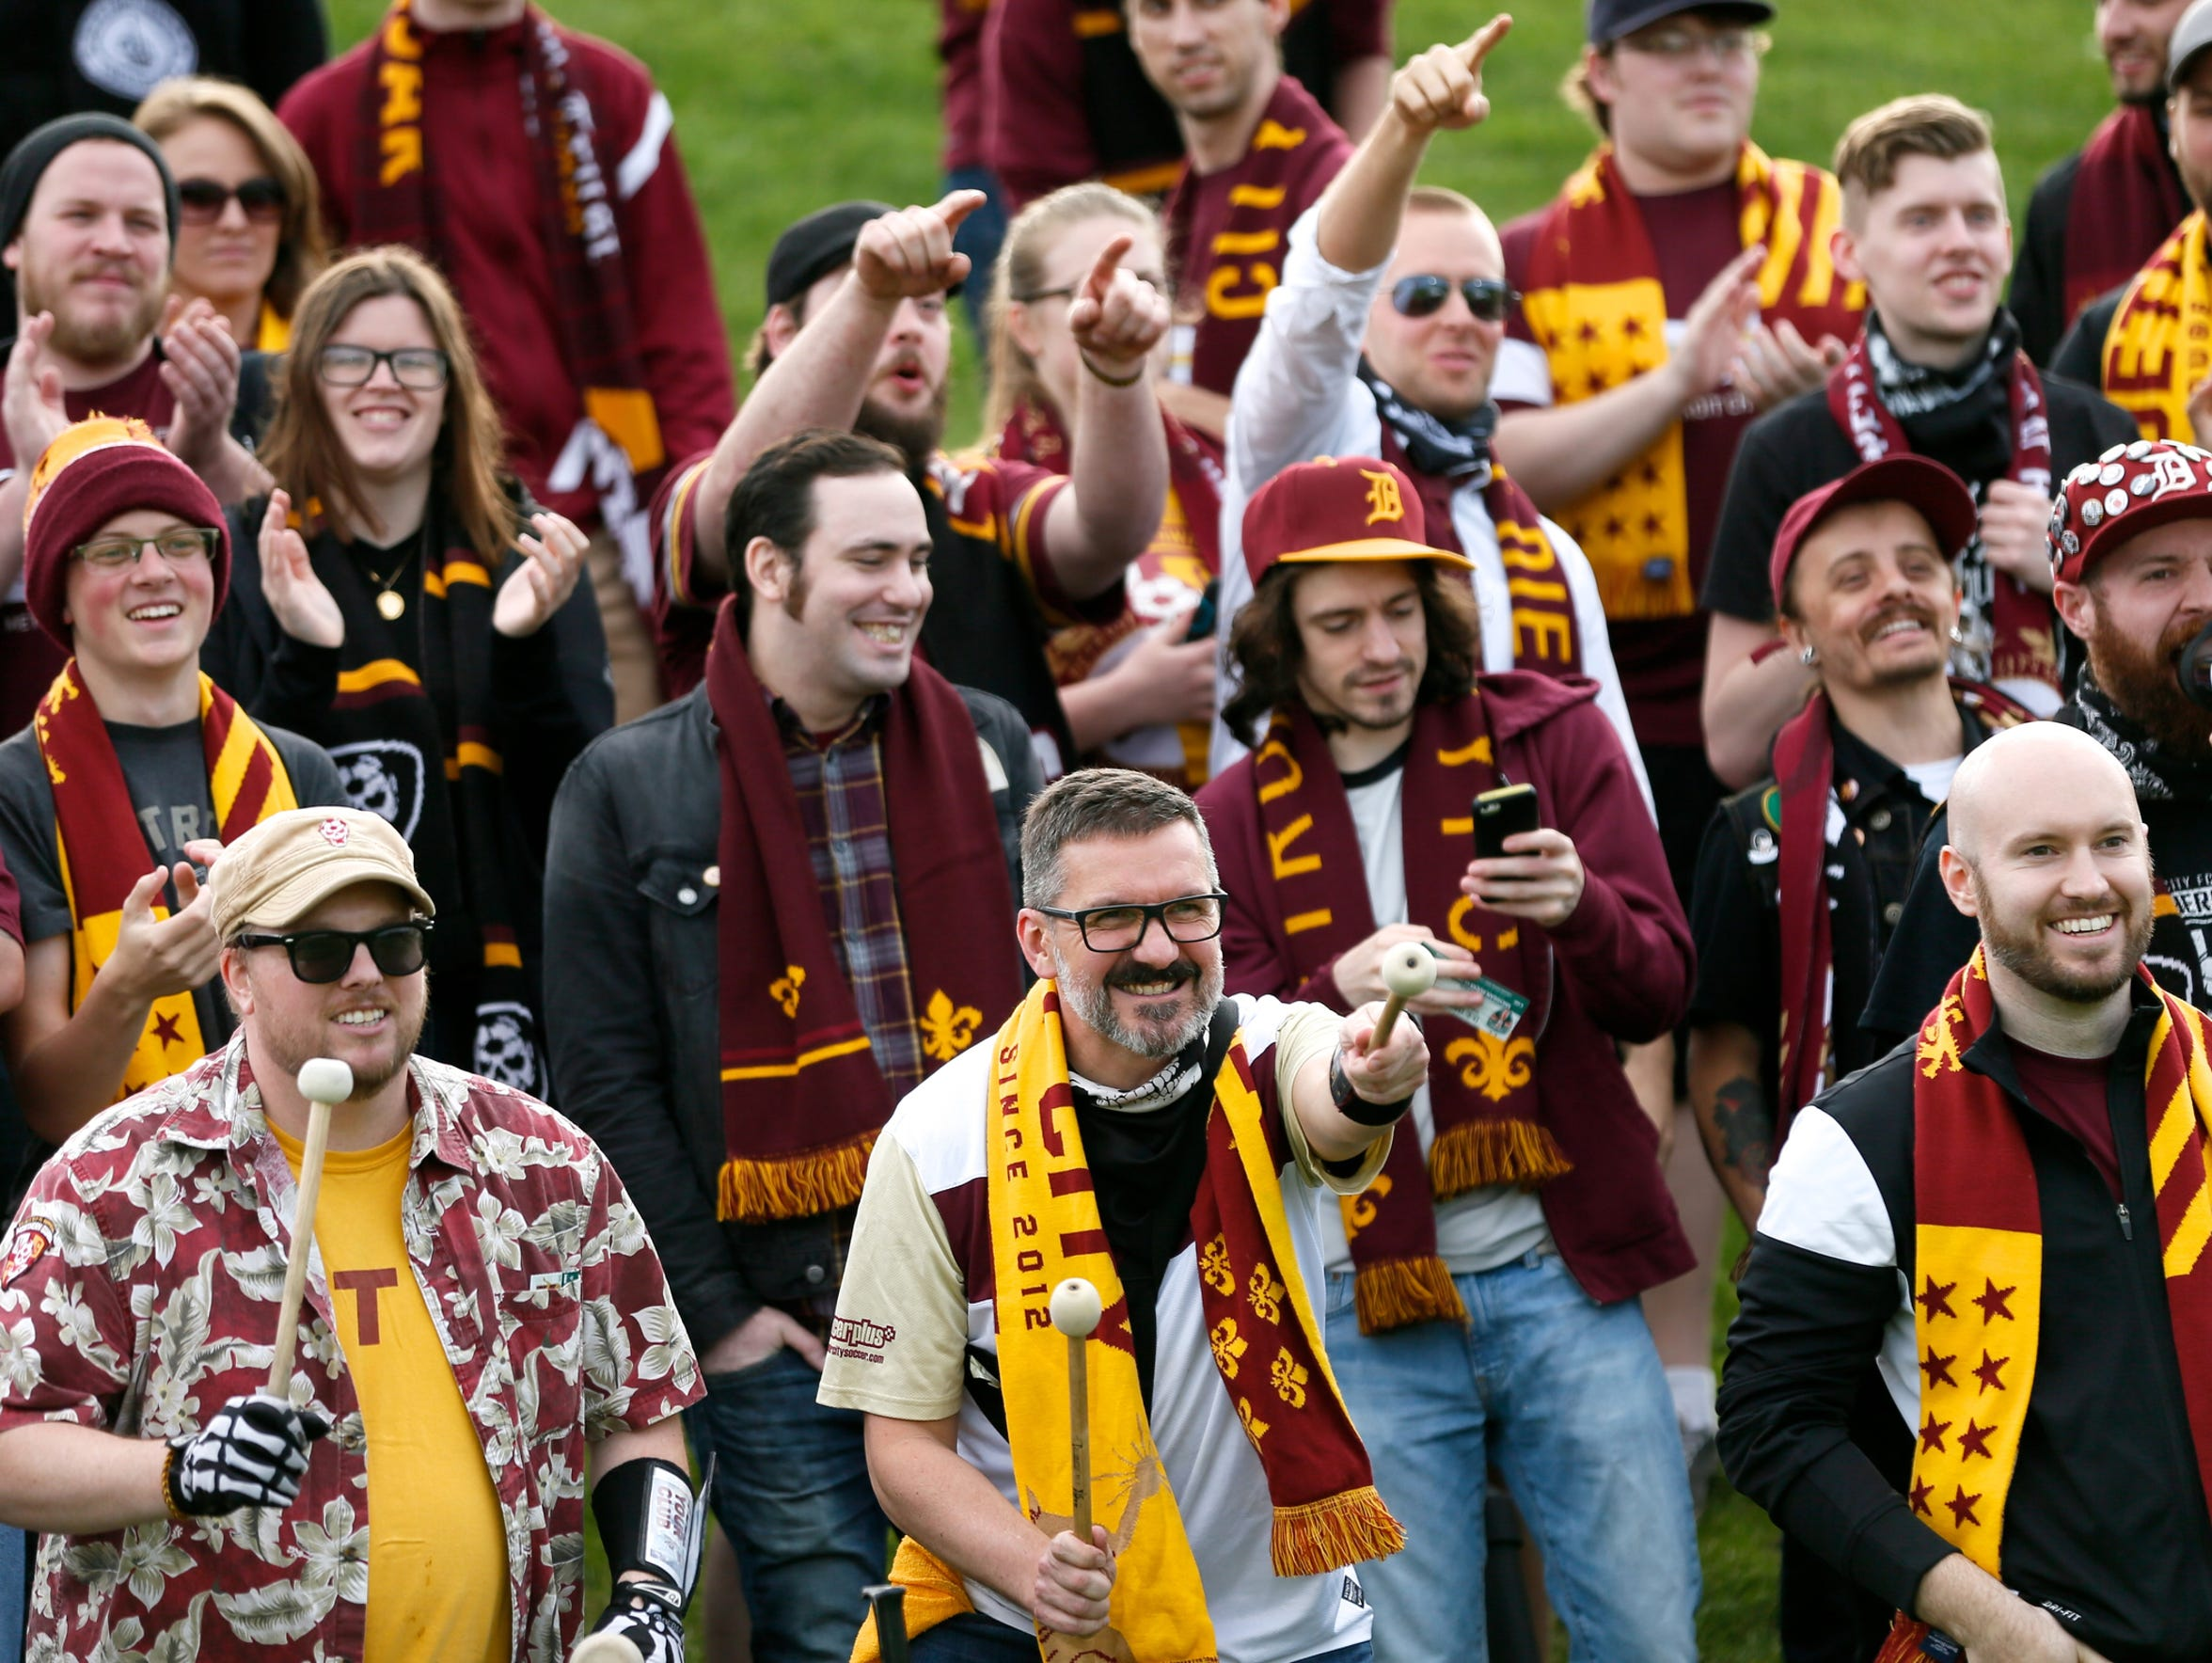 Detroit City FC fans cheer for their team as they play